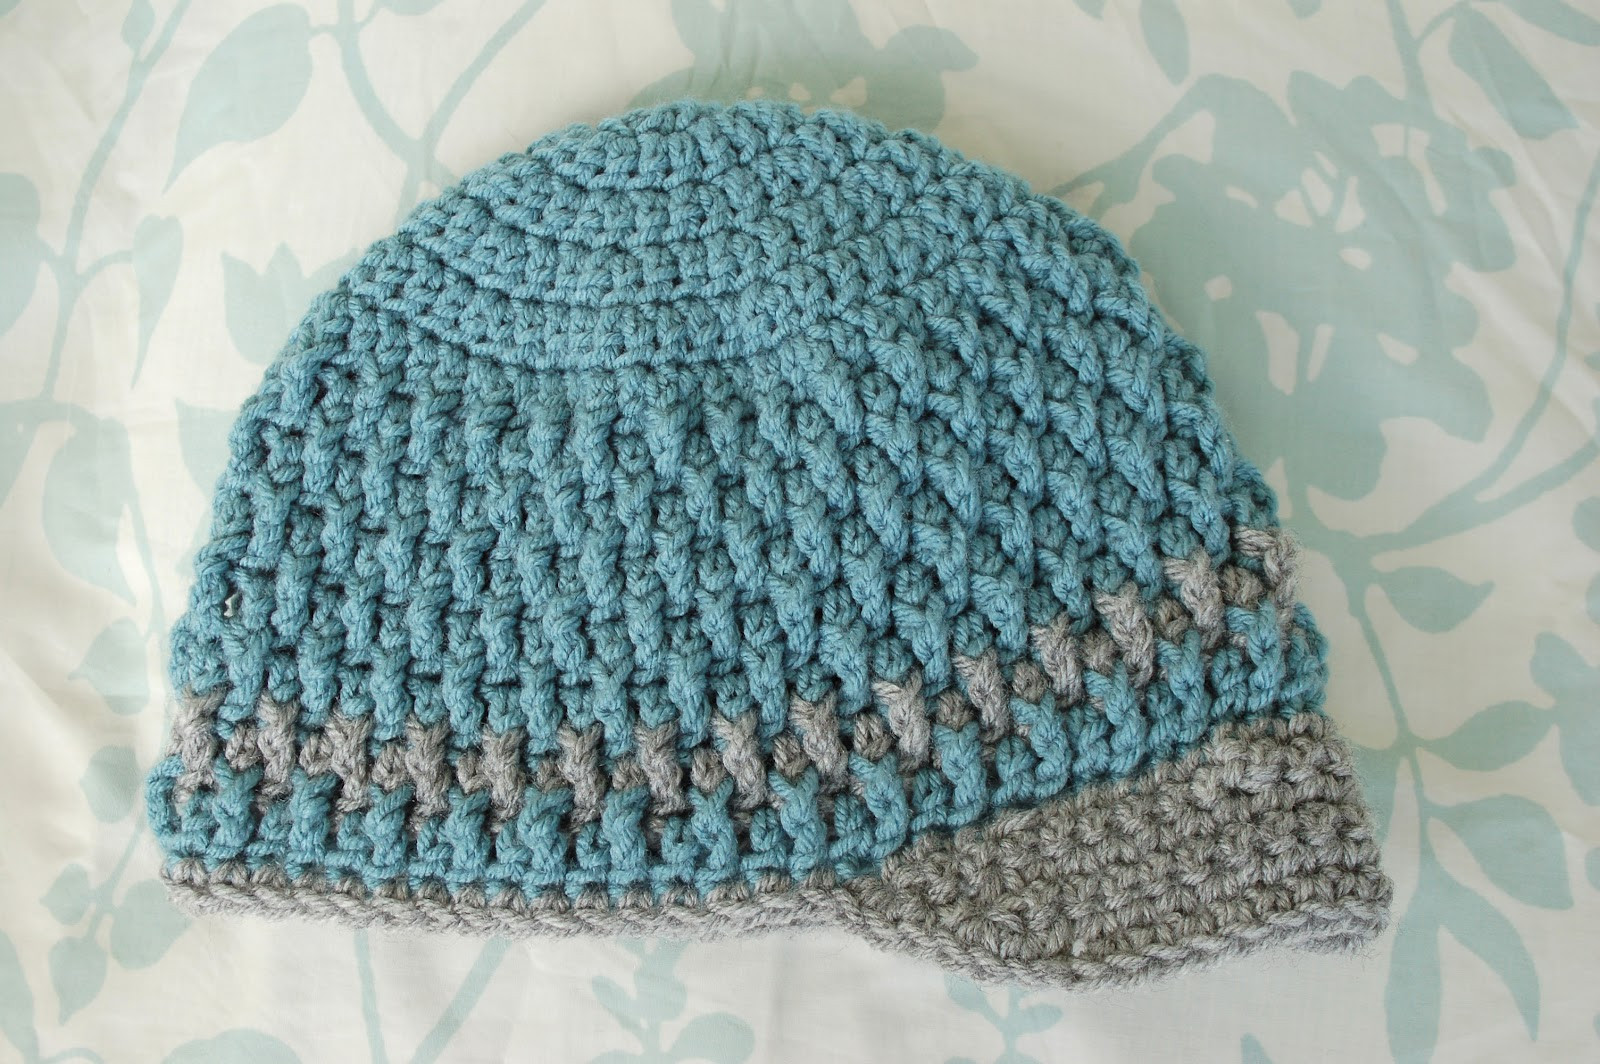 Free Crochet Baby Hat Patterns Lovely Alli Crafts Free Pattern Deeply Textured Hat toddler Of Adorable 48 Pics Free Crochet Baby Hat Patterns